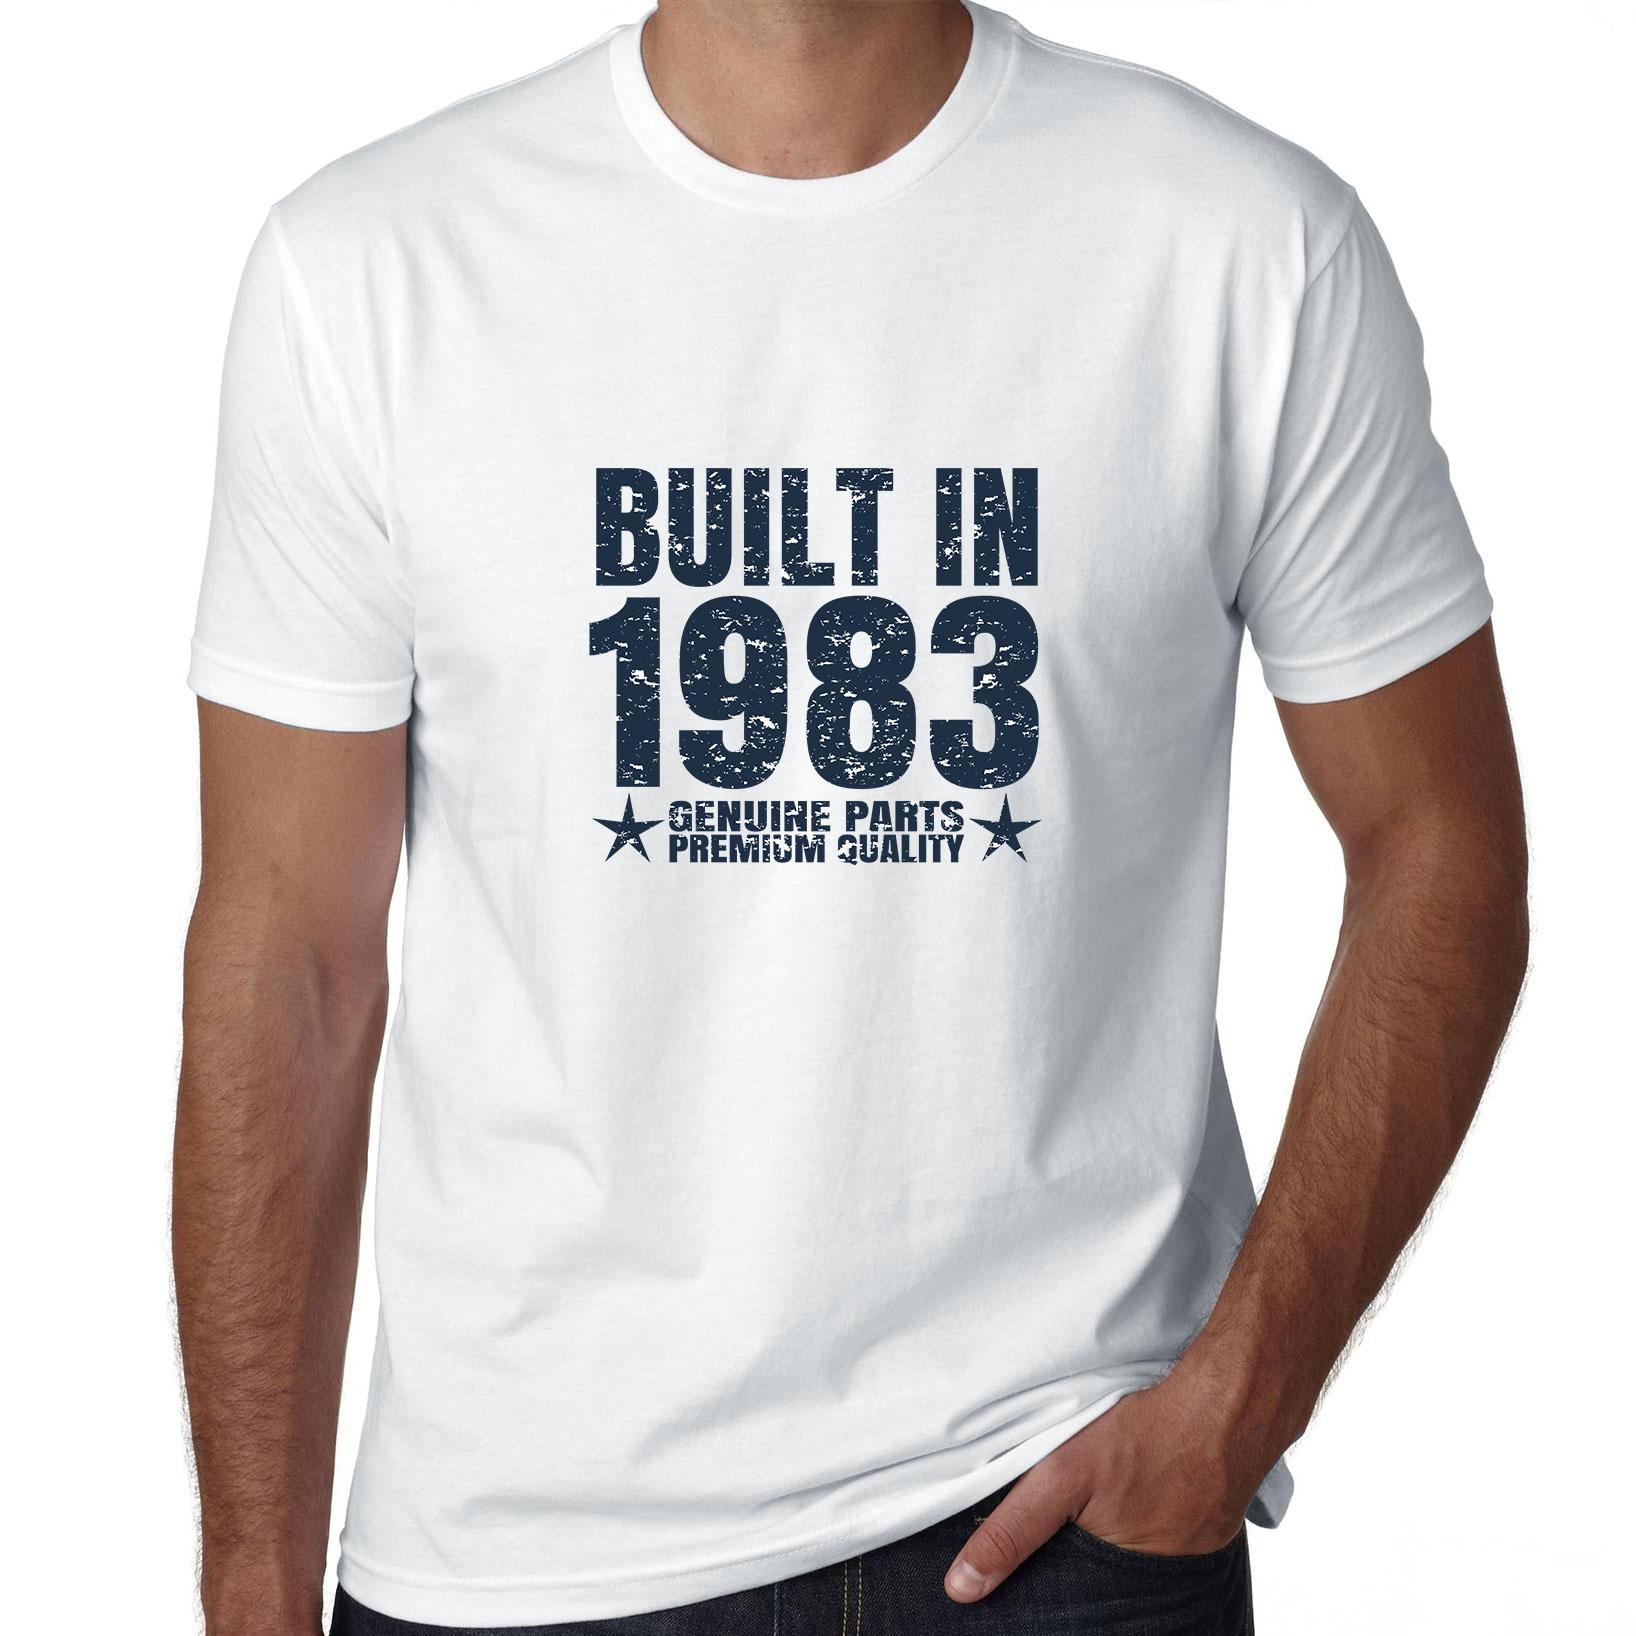 Built In 1983 - Perfect Birthday Present Gift - Vintage Men's T-Shirt